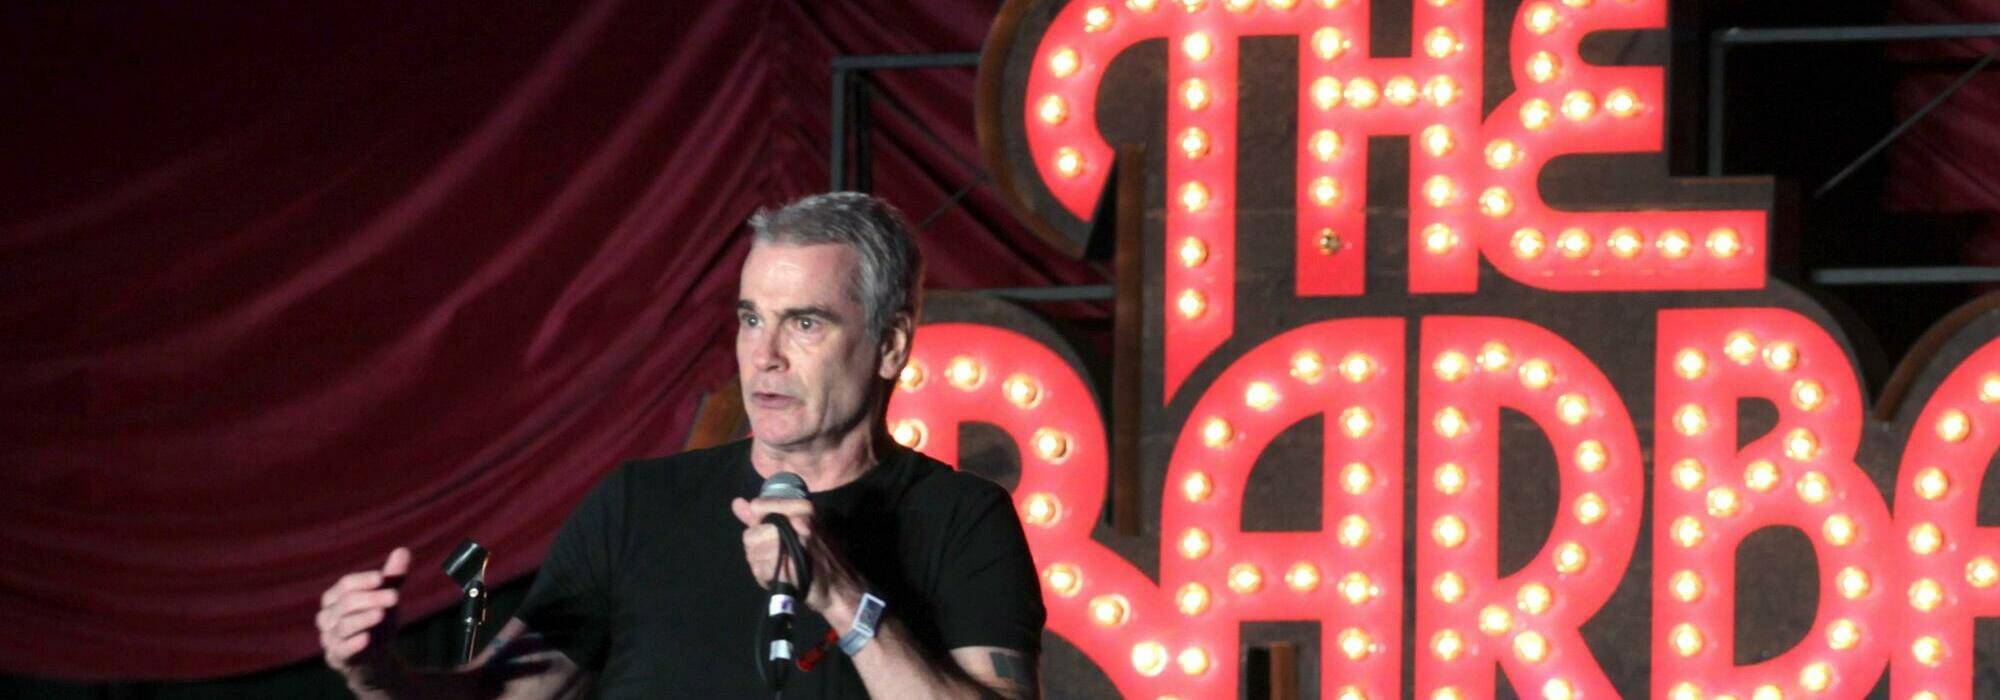 A Henry Rollins live event